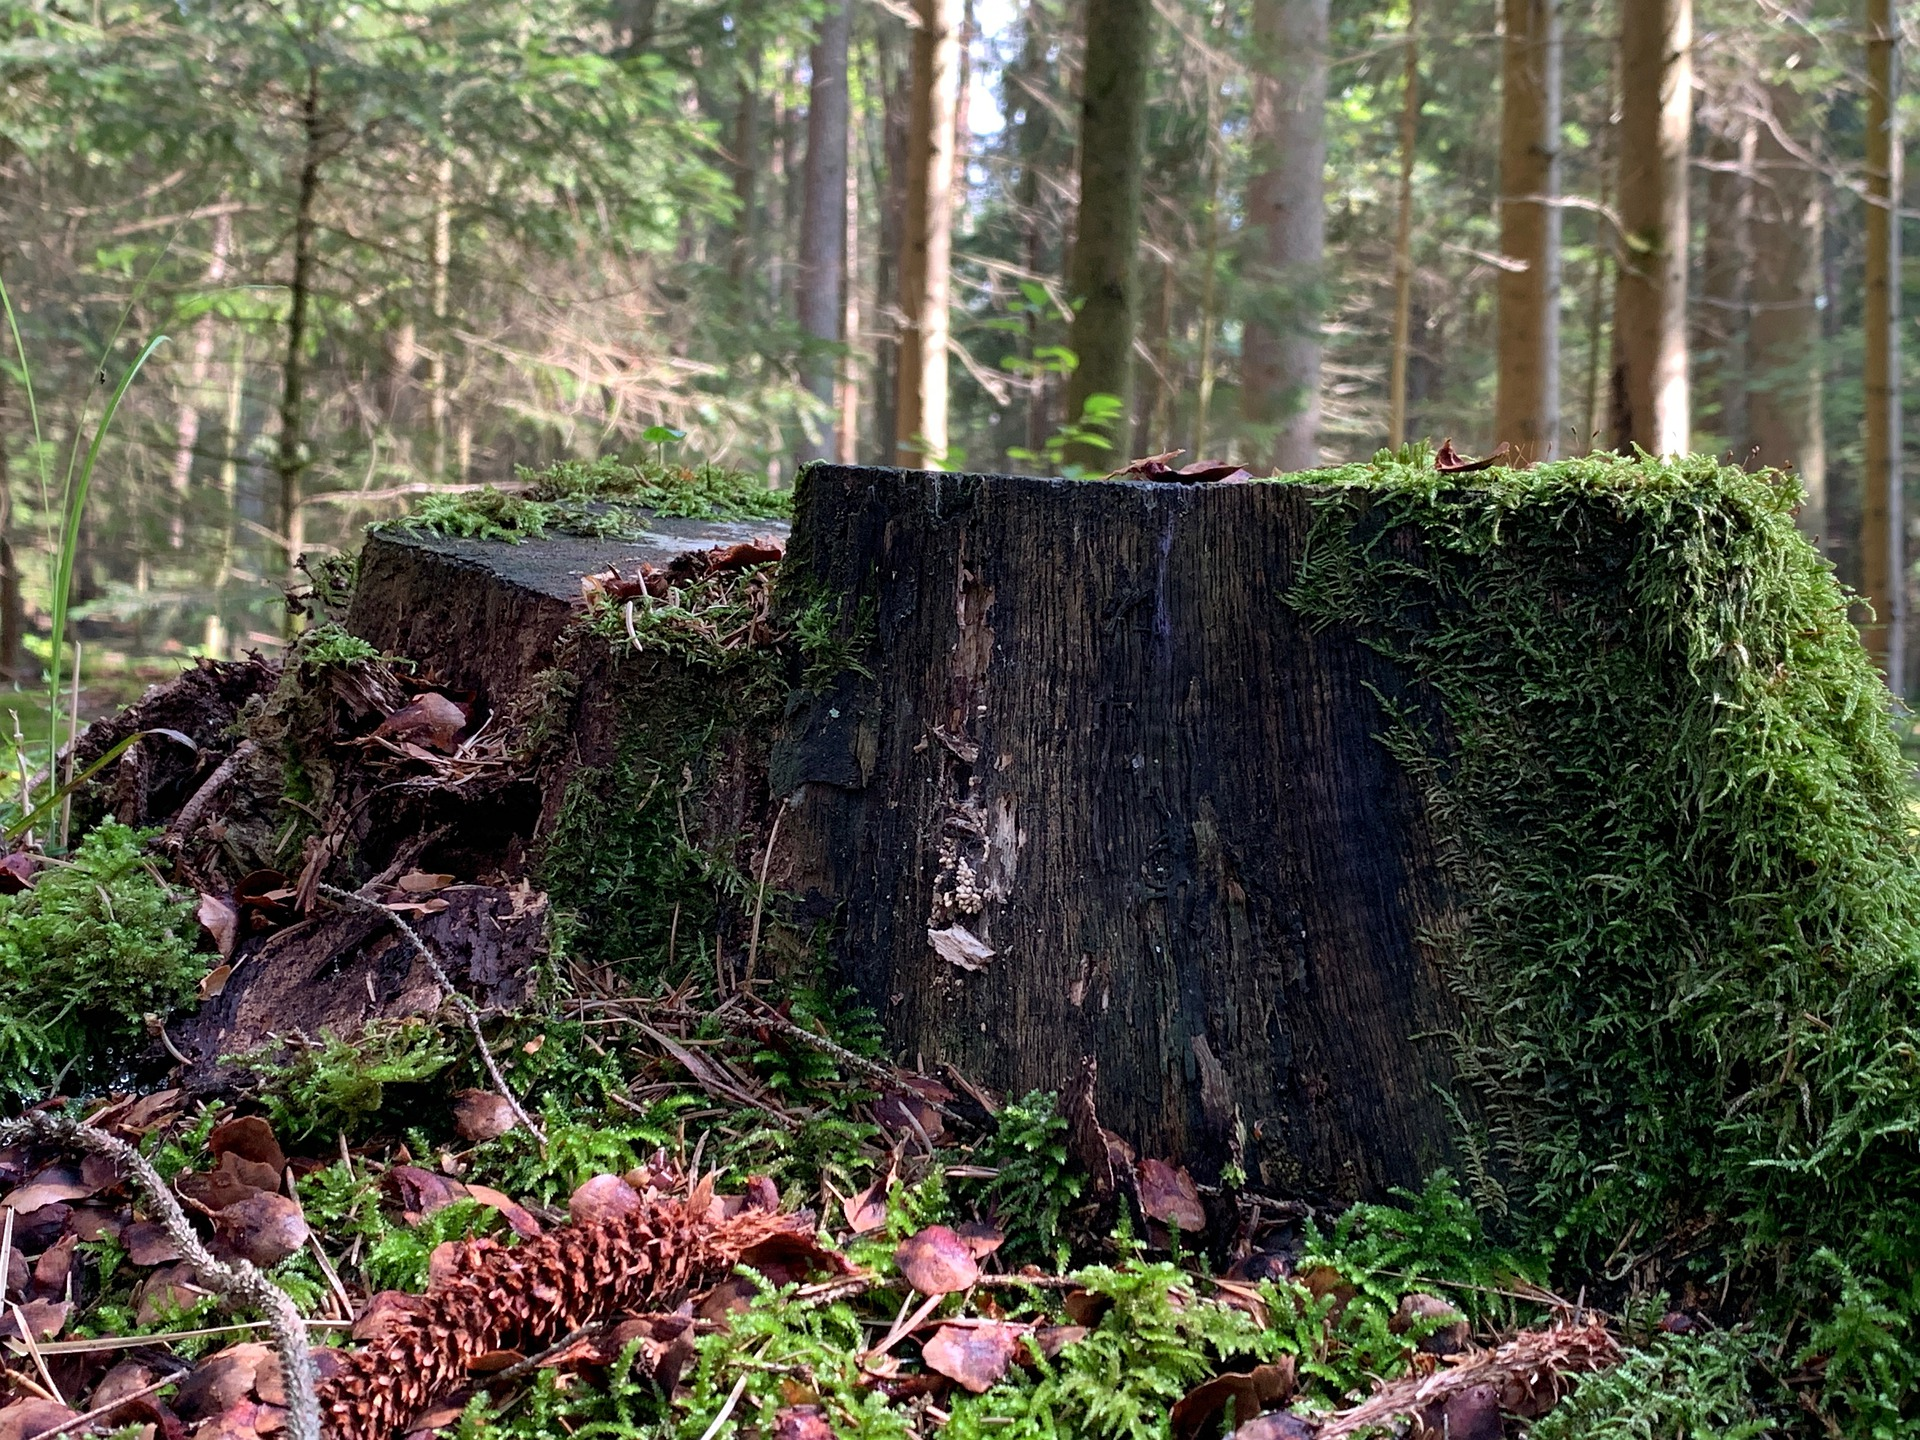 An image of a tree stump at SGL Forestry